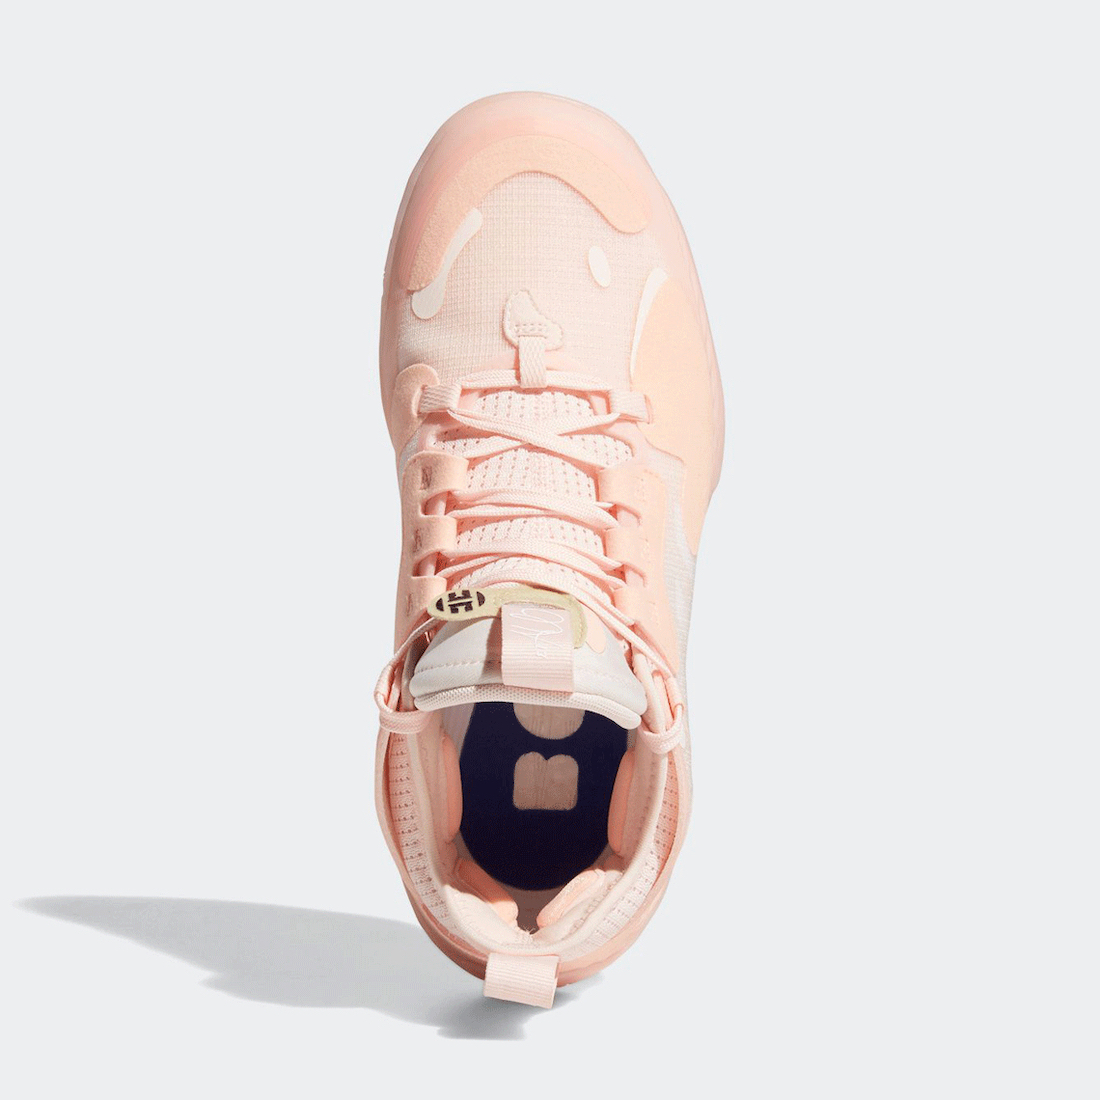 adidas Harden Vol 5 Futurenatural Icy Pink FZ0834 Release Date Info